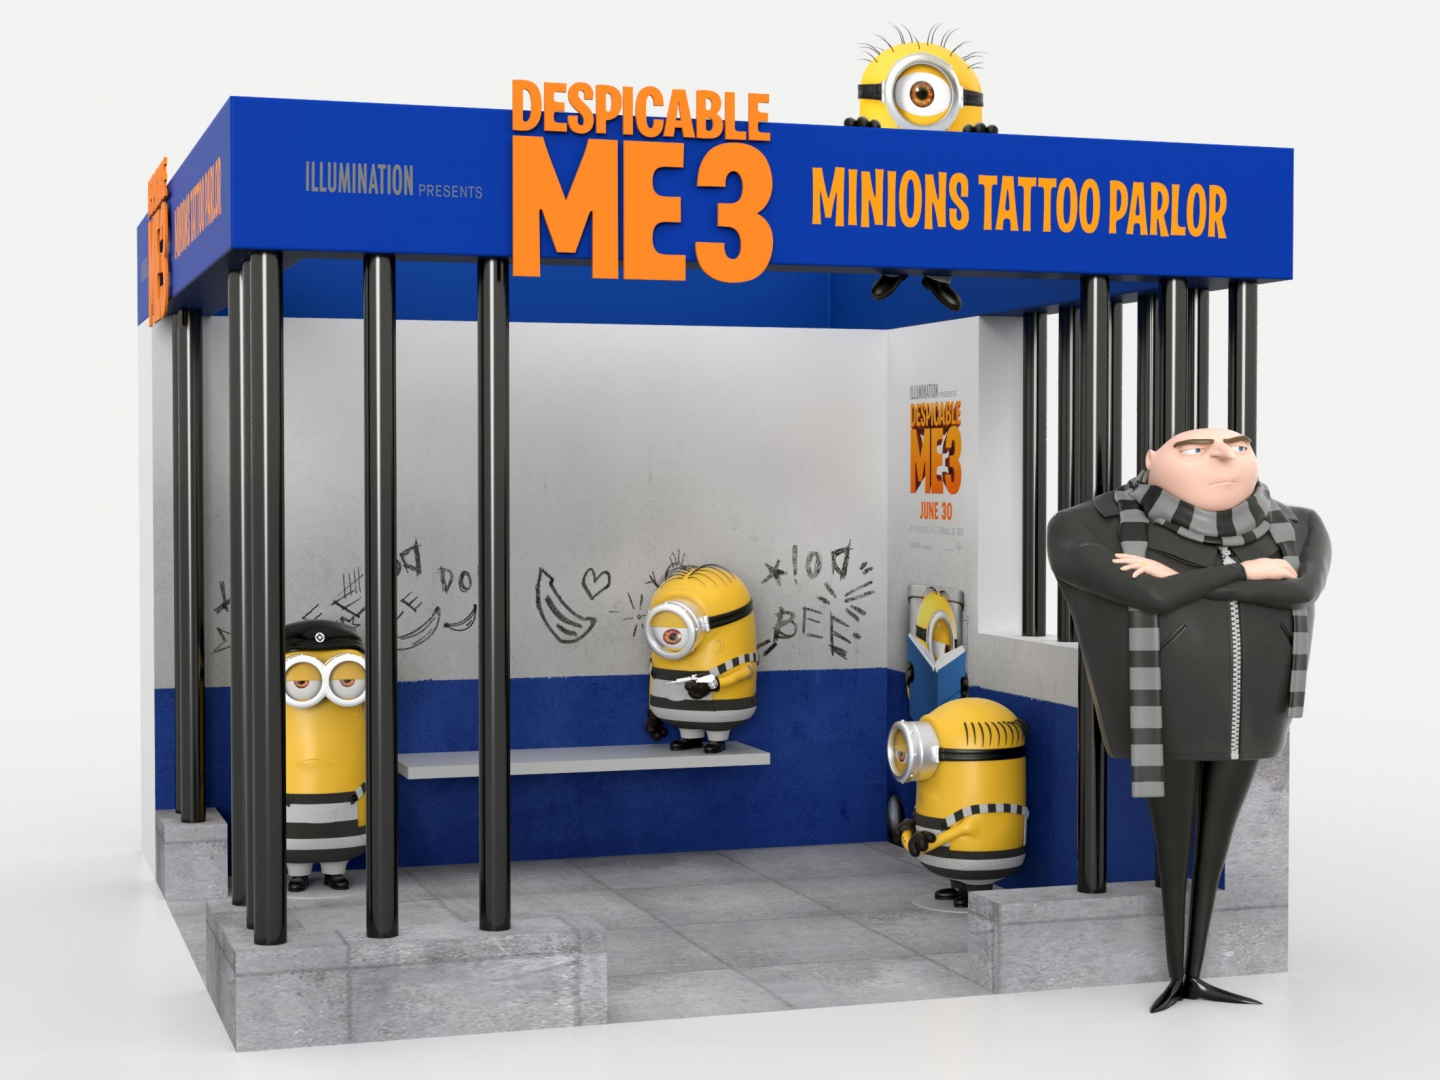 Despicable Me 3 Tattoo Parlor Theatrical: Events/Experiential Thumbnail